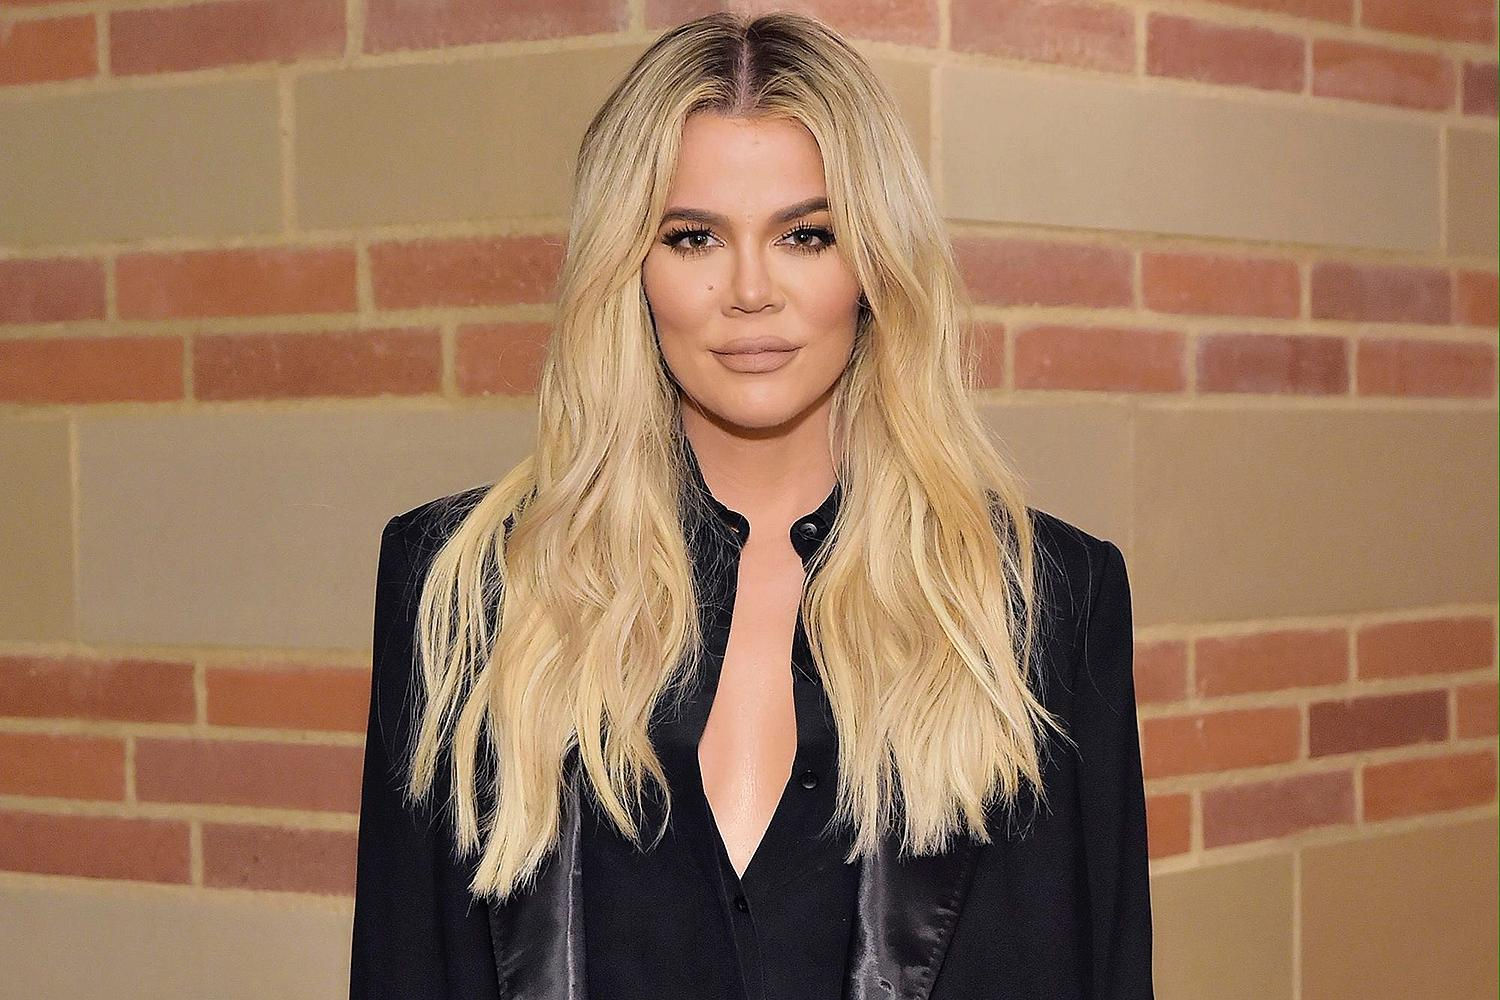 KUWTK: Khloe Kardashian Claims Hate And Criticism No Longer Affects Her - Here's Why!